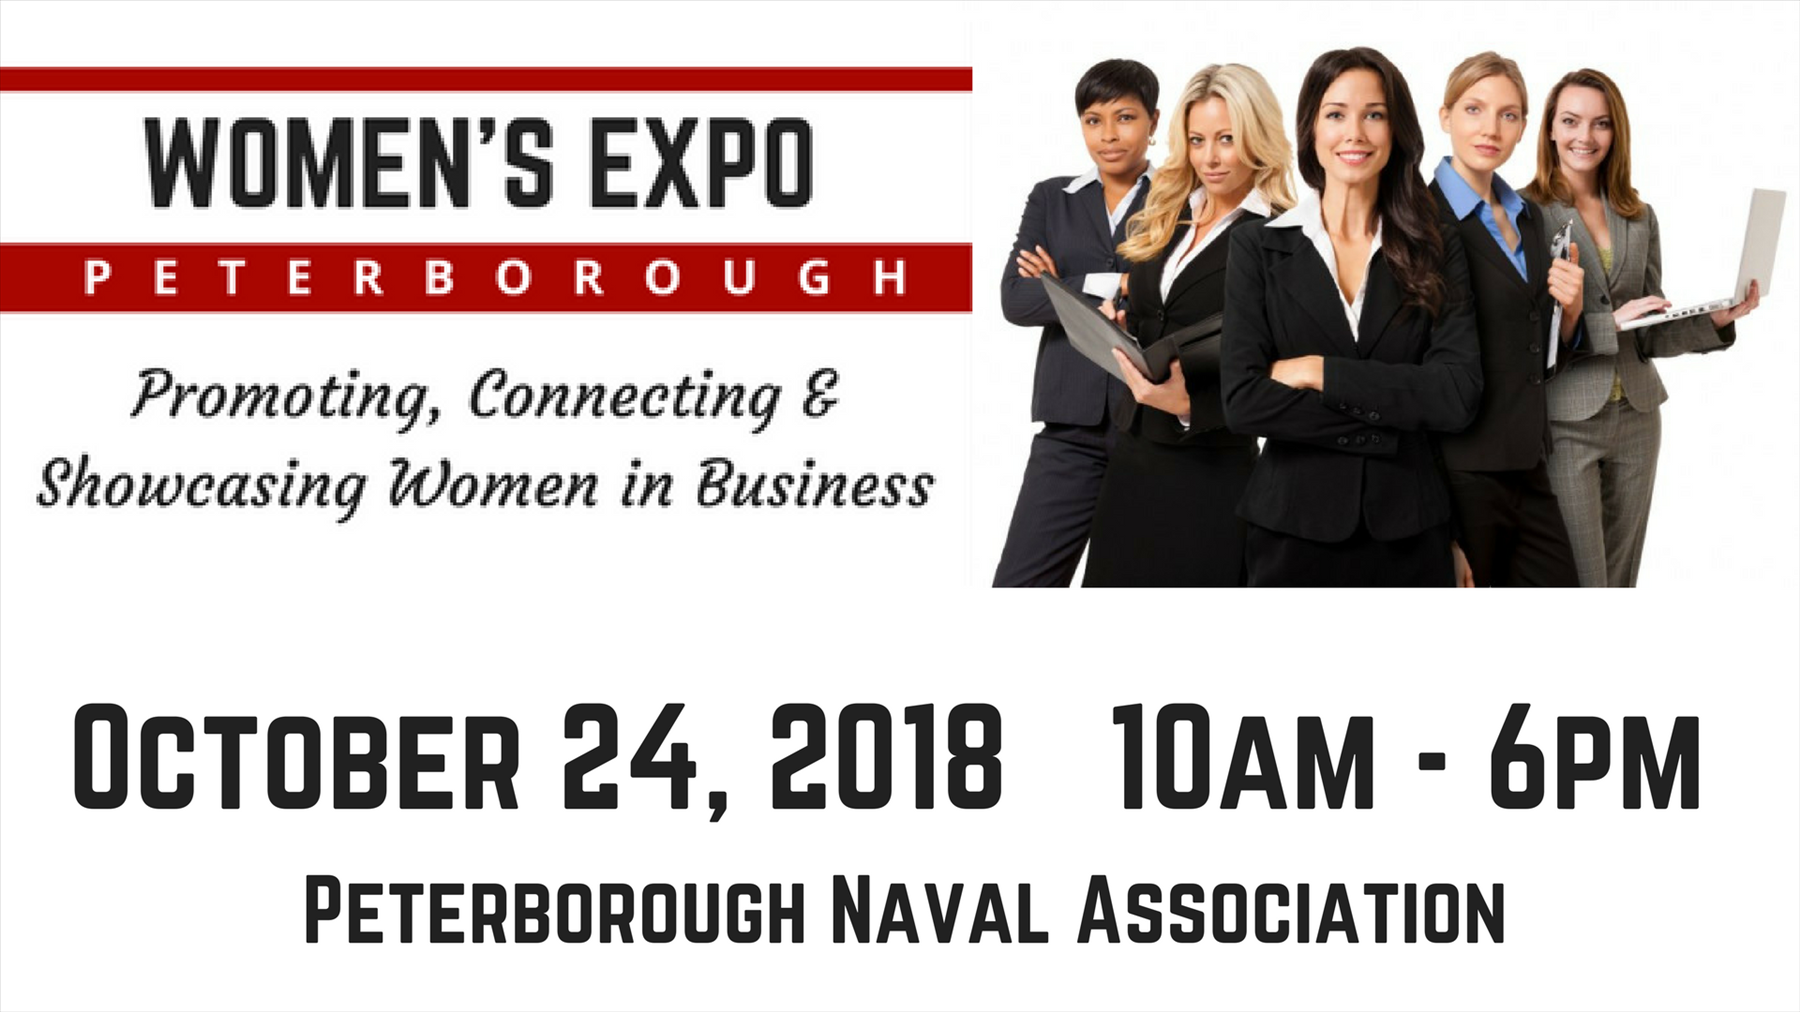 Womens Expo Peterborough